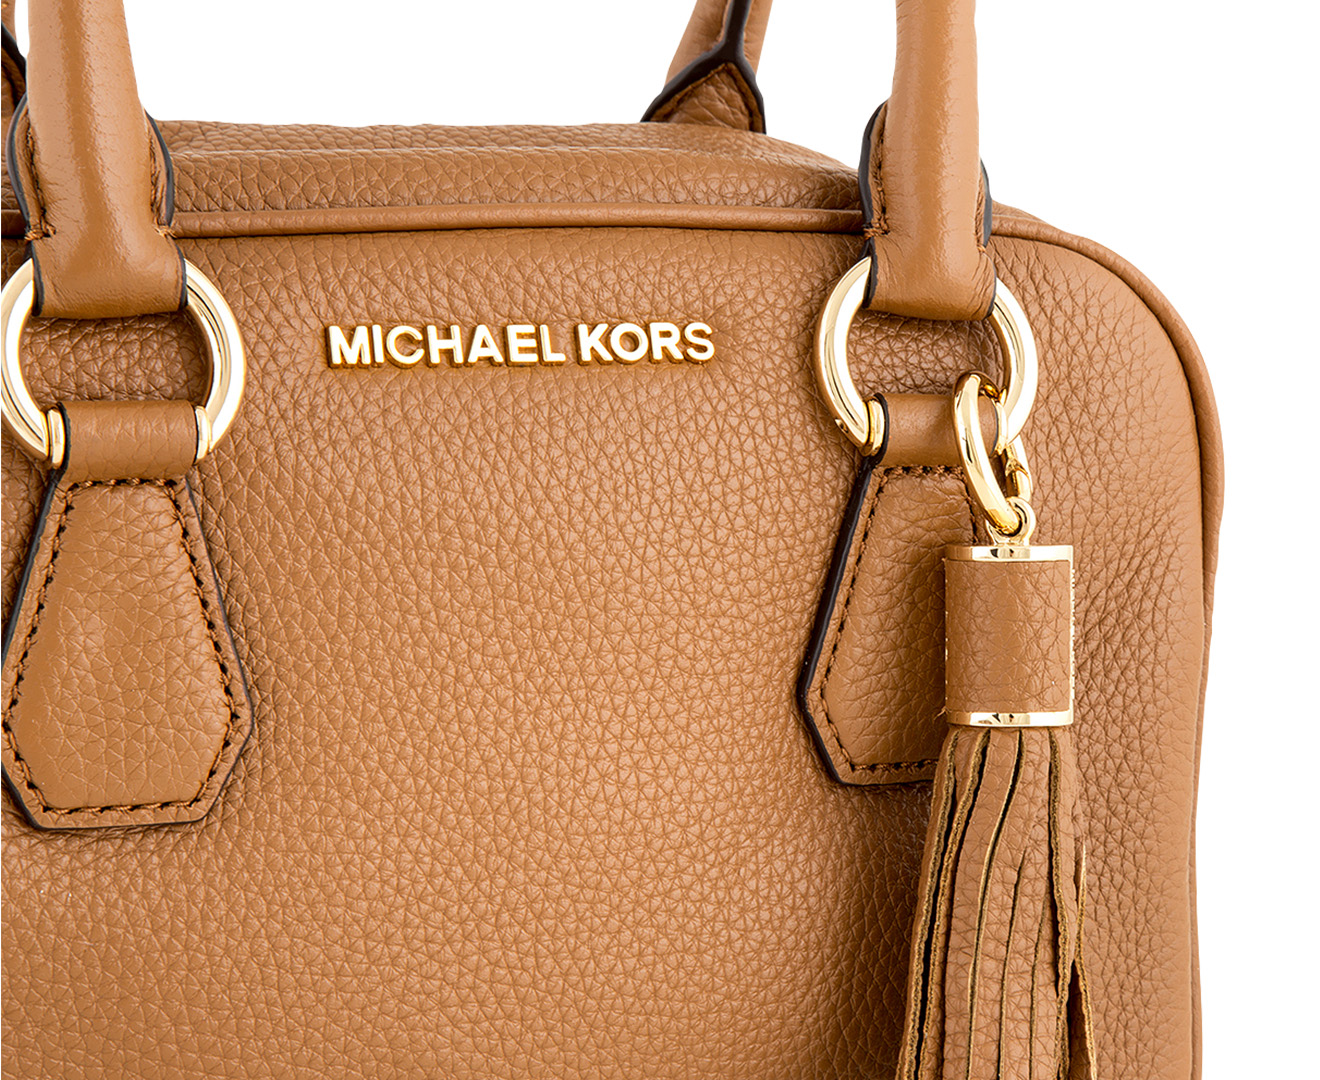 5a920cb4a8e3 82686 85194; authentic michael kors bedford small tassel leather satchel  acorn mamamia shopping 673b9 7afe6